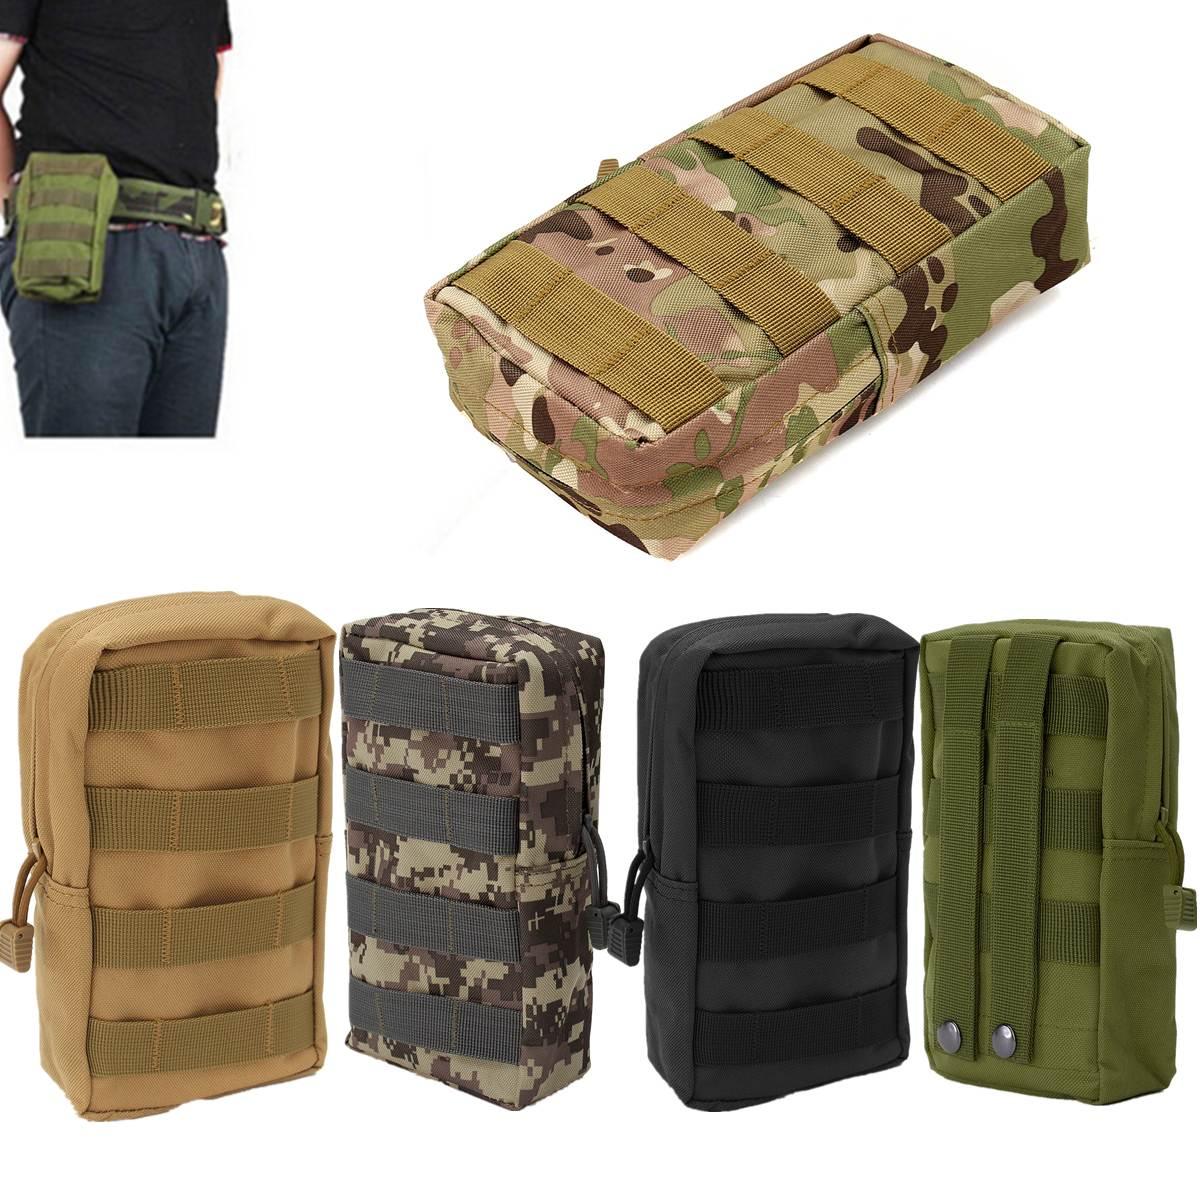 Best Nylon Tactical Molle Waist Bag Waterproof Medical First Aid Outdoor Bags Utility Emergency Storage Pouch Bag Emergency Kits